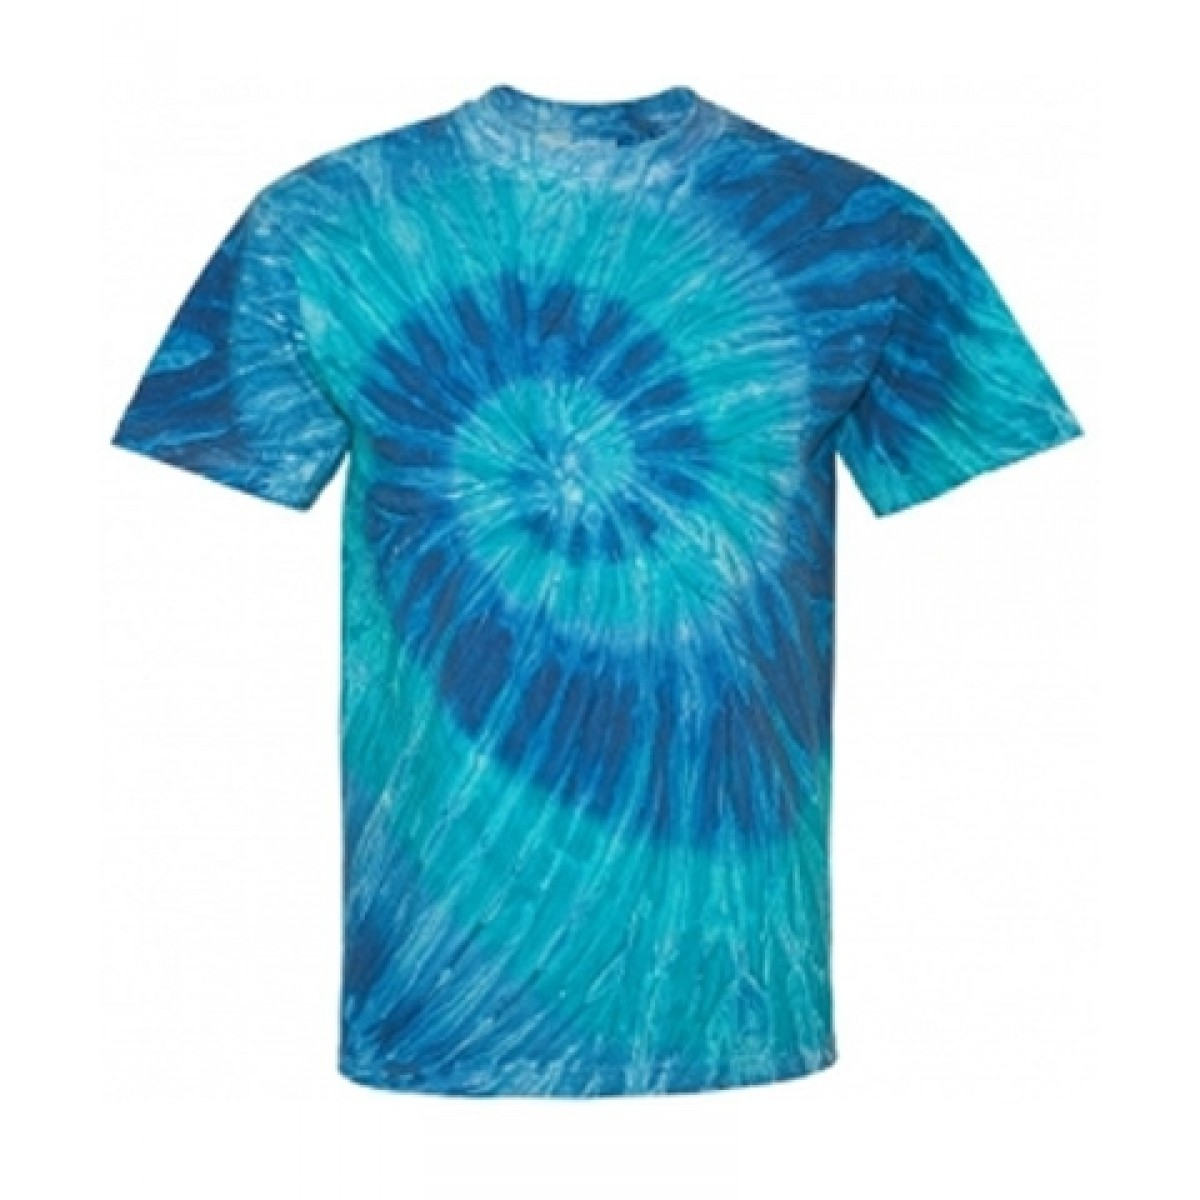 Blue Ripple Tie Dye T-Shirt-Scuba Blue -YM